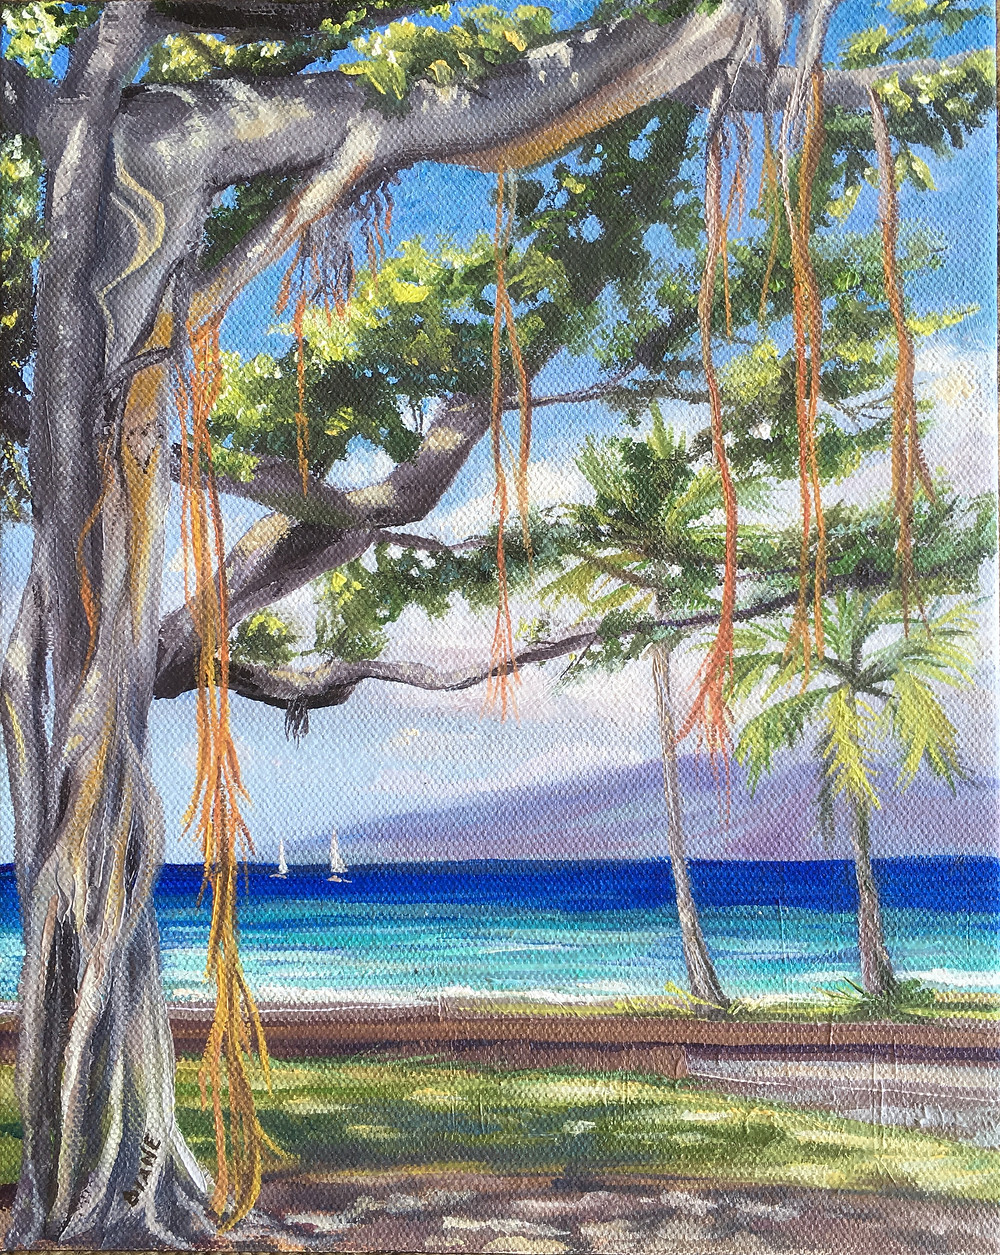 I see Picasso in the Banyan Tree oil painting by Diane Snoey Appler